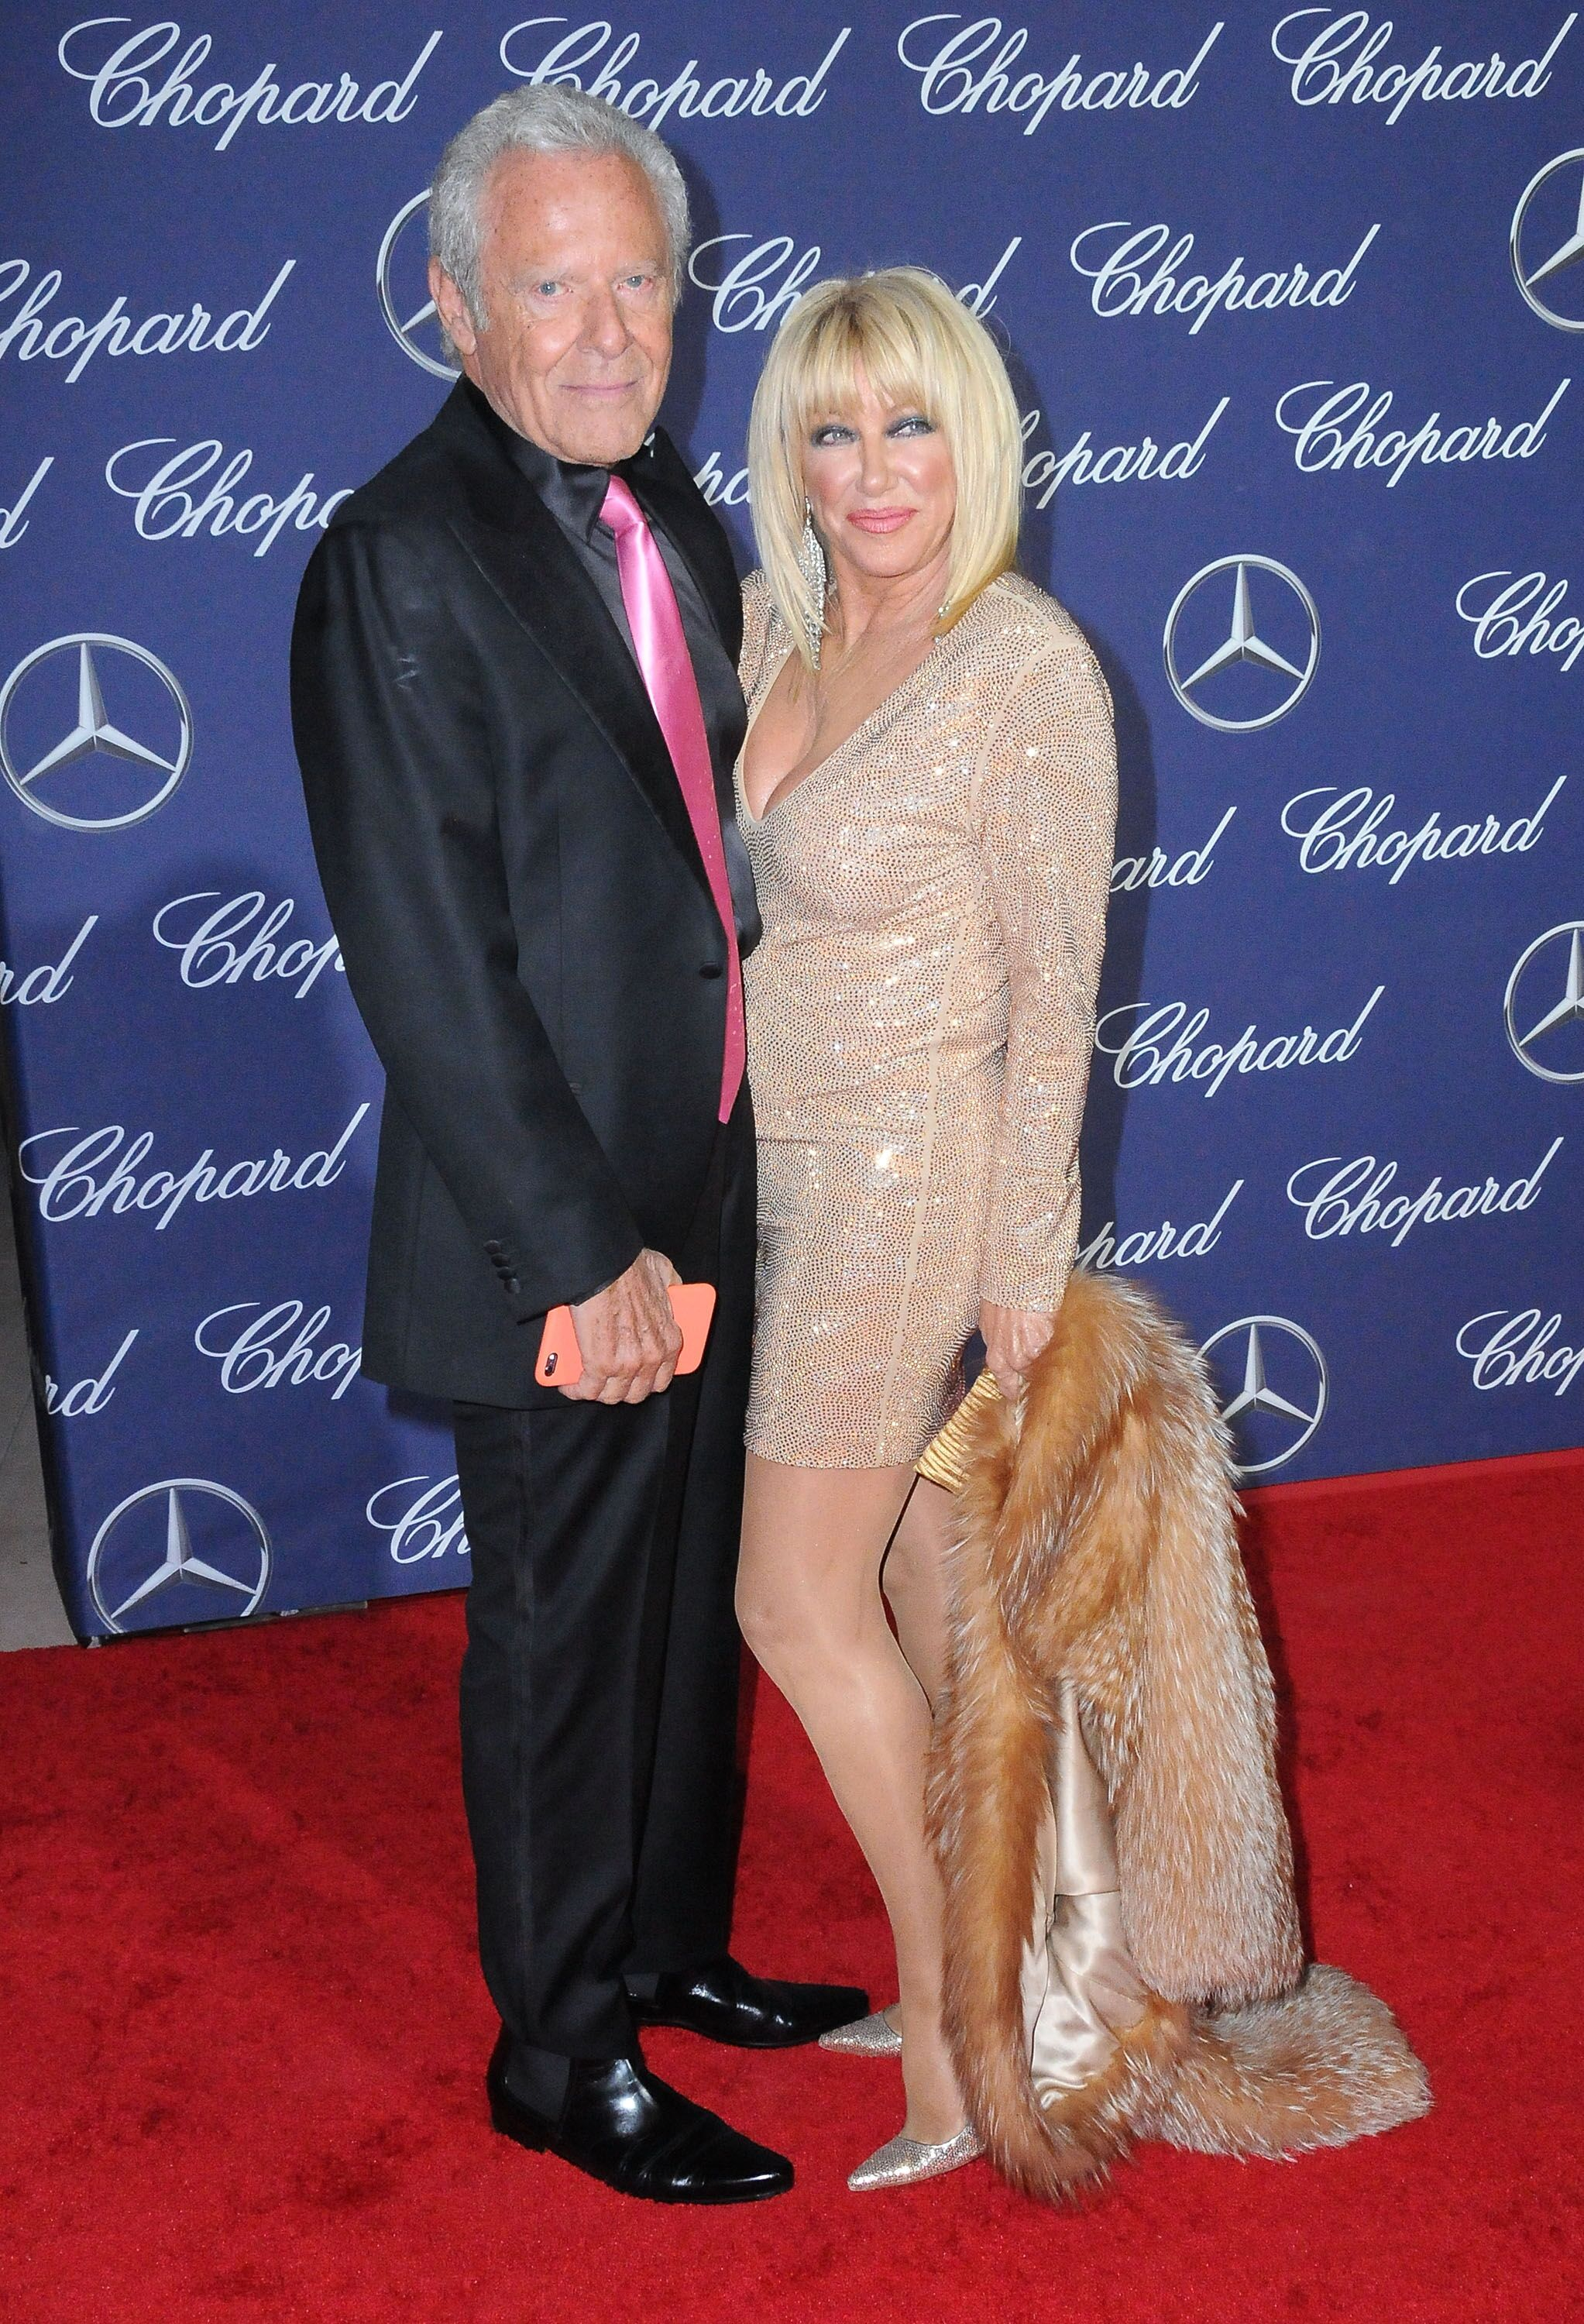 Suzanne Somers and husband Alan Hamel at the 28th Annual Palm Springs International Film Festival Film Awards Gala | Source: Getty Images